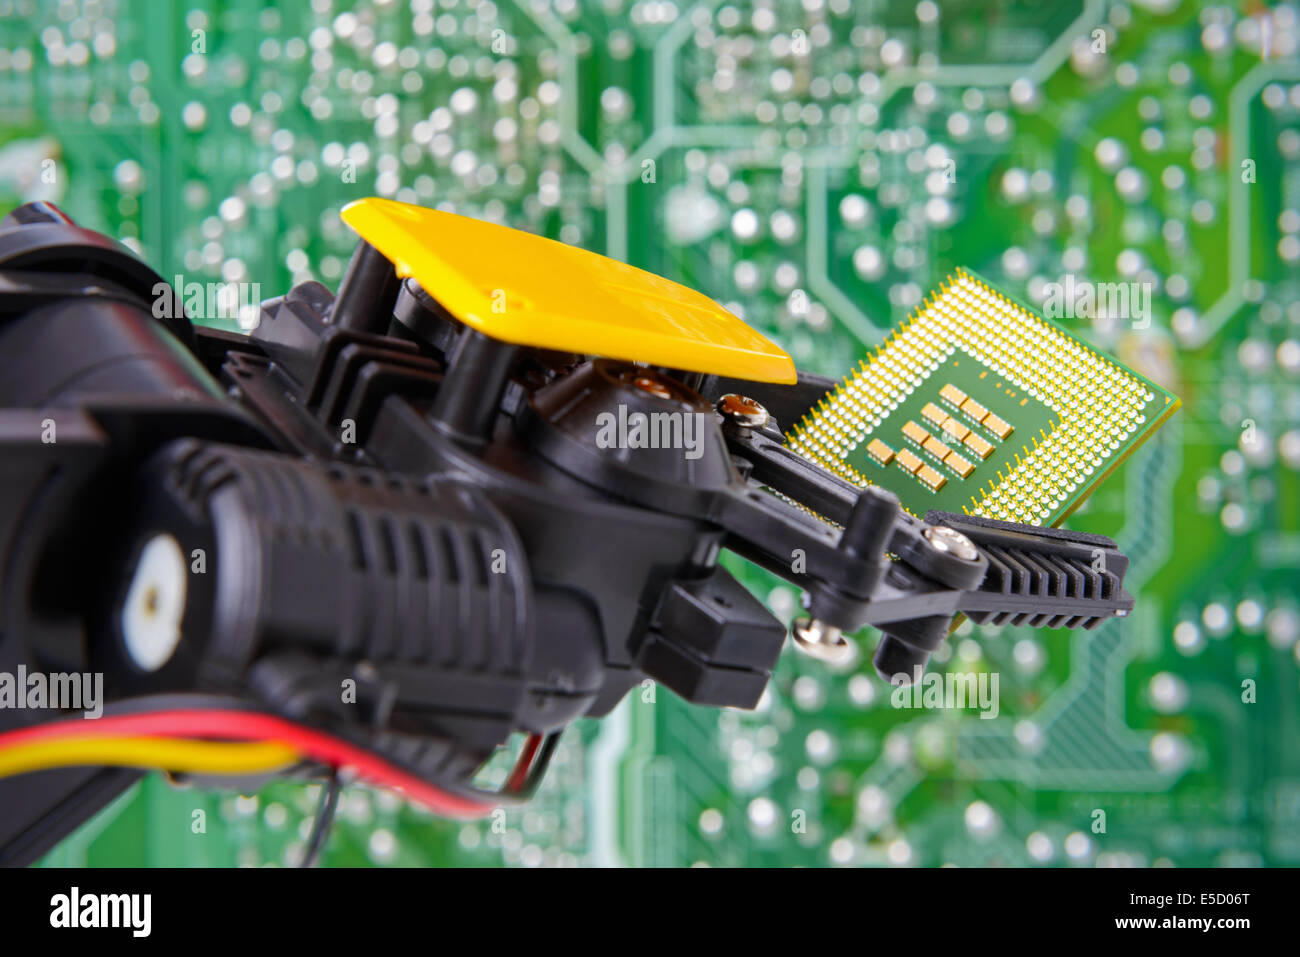 Robotic arm holding a computer chip against a circuit board background. - Stock Image